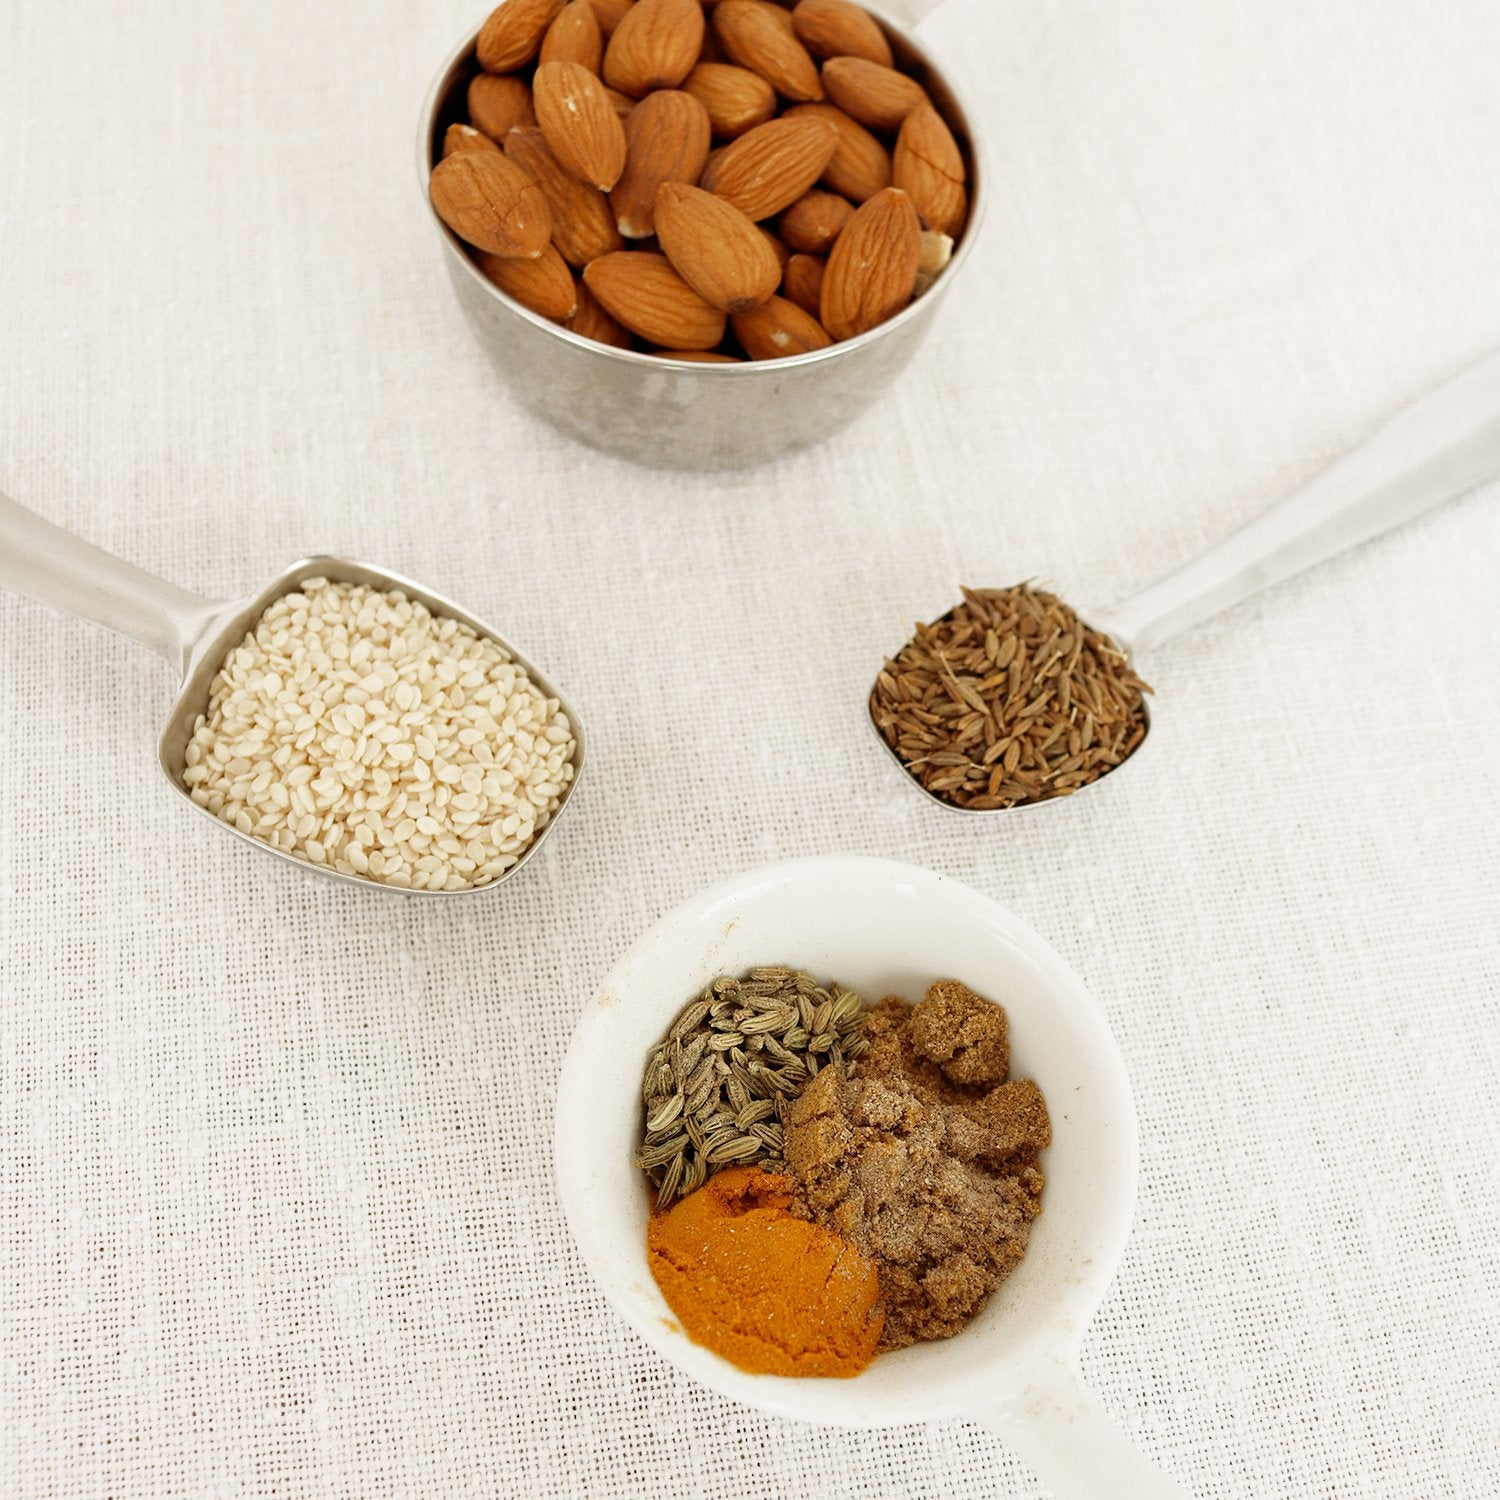 dukkah ingredients almonds sesame seeds cumin tumeric cardamom Camille Co. recipe blog post